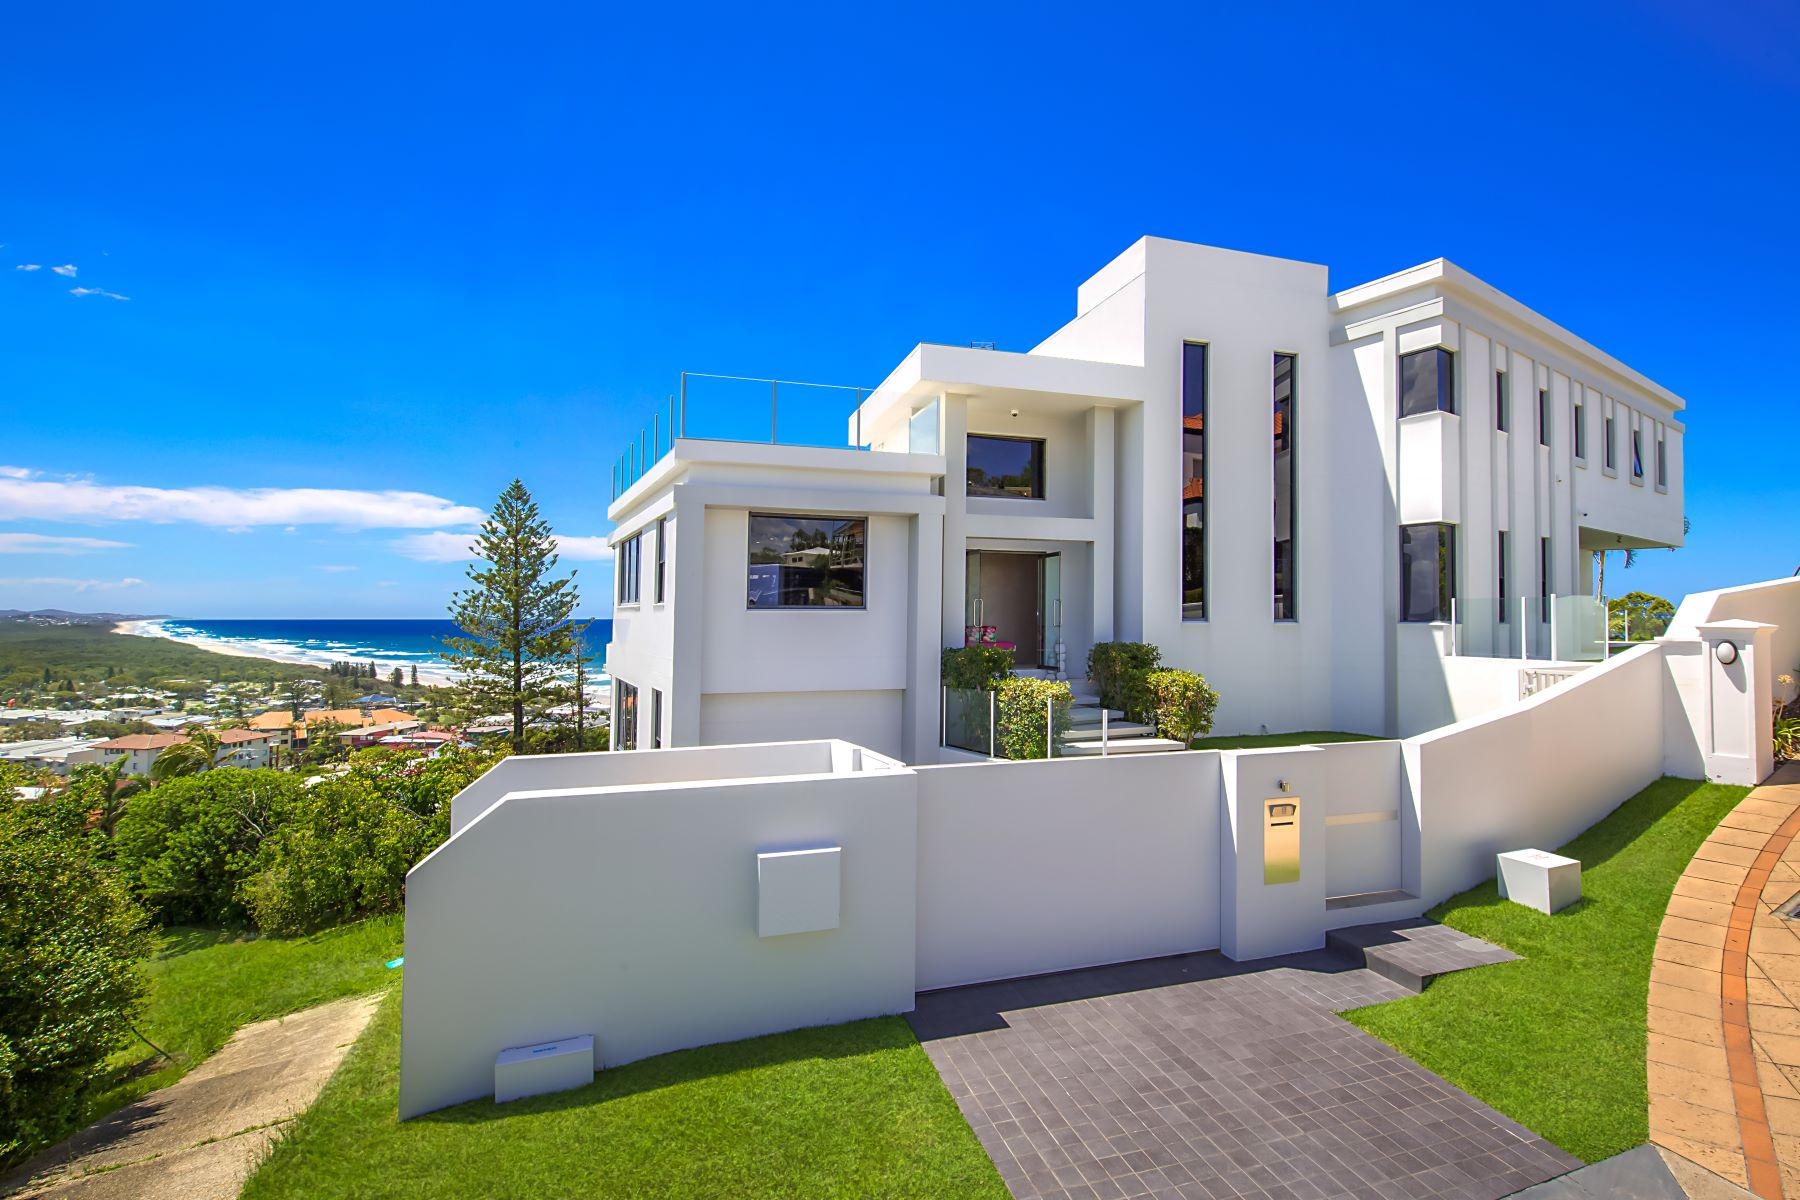 土地 のために 売買 アット 31 Pacific Heights Court, Coolum Beach Sunshine Coast, Queensland, 4573 オーストラリア